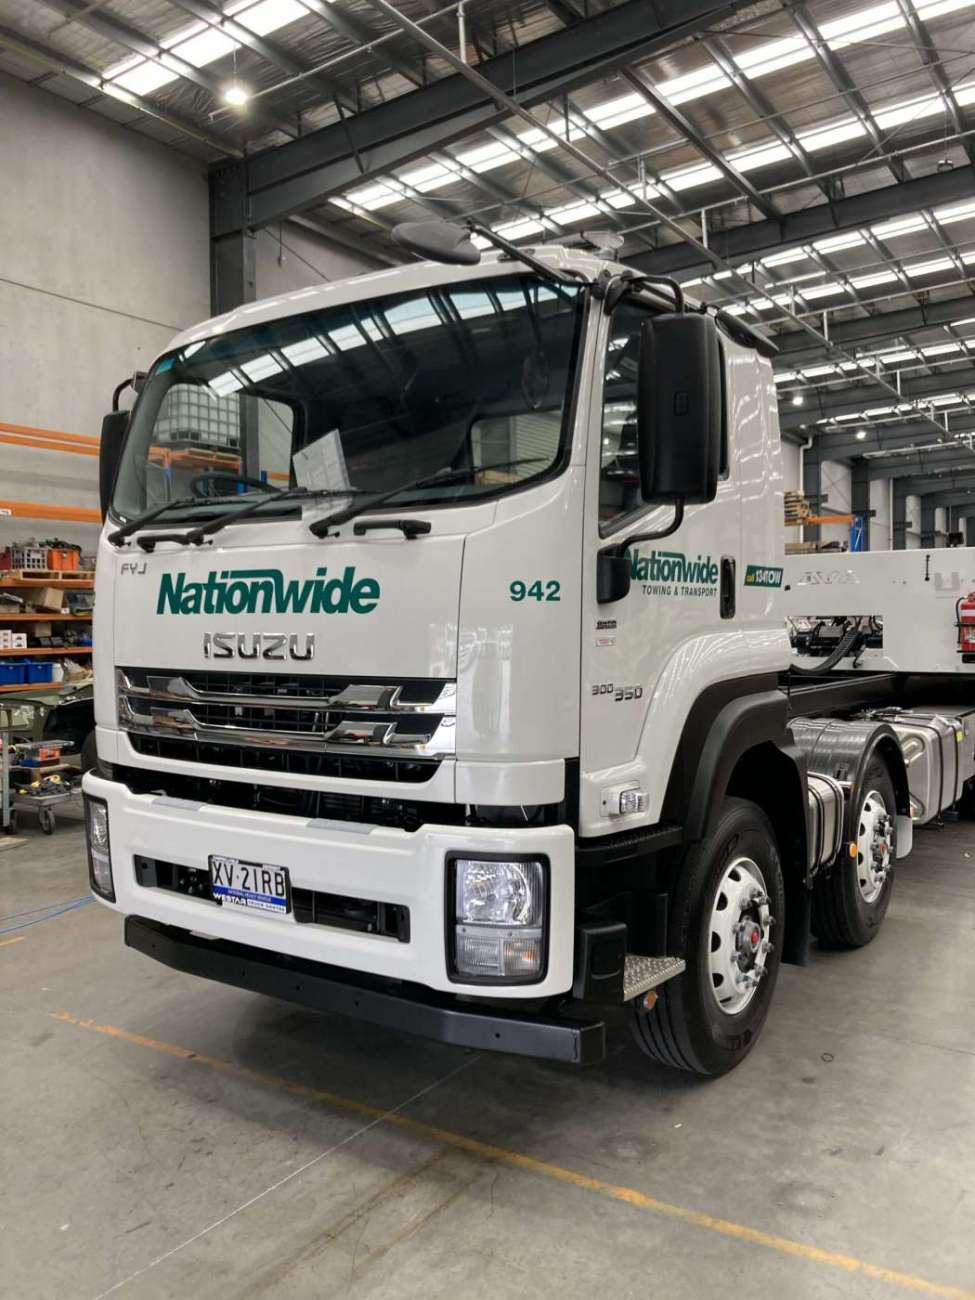 Nationwide Scaled Tow Truck Australian Signmakers